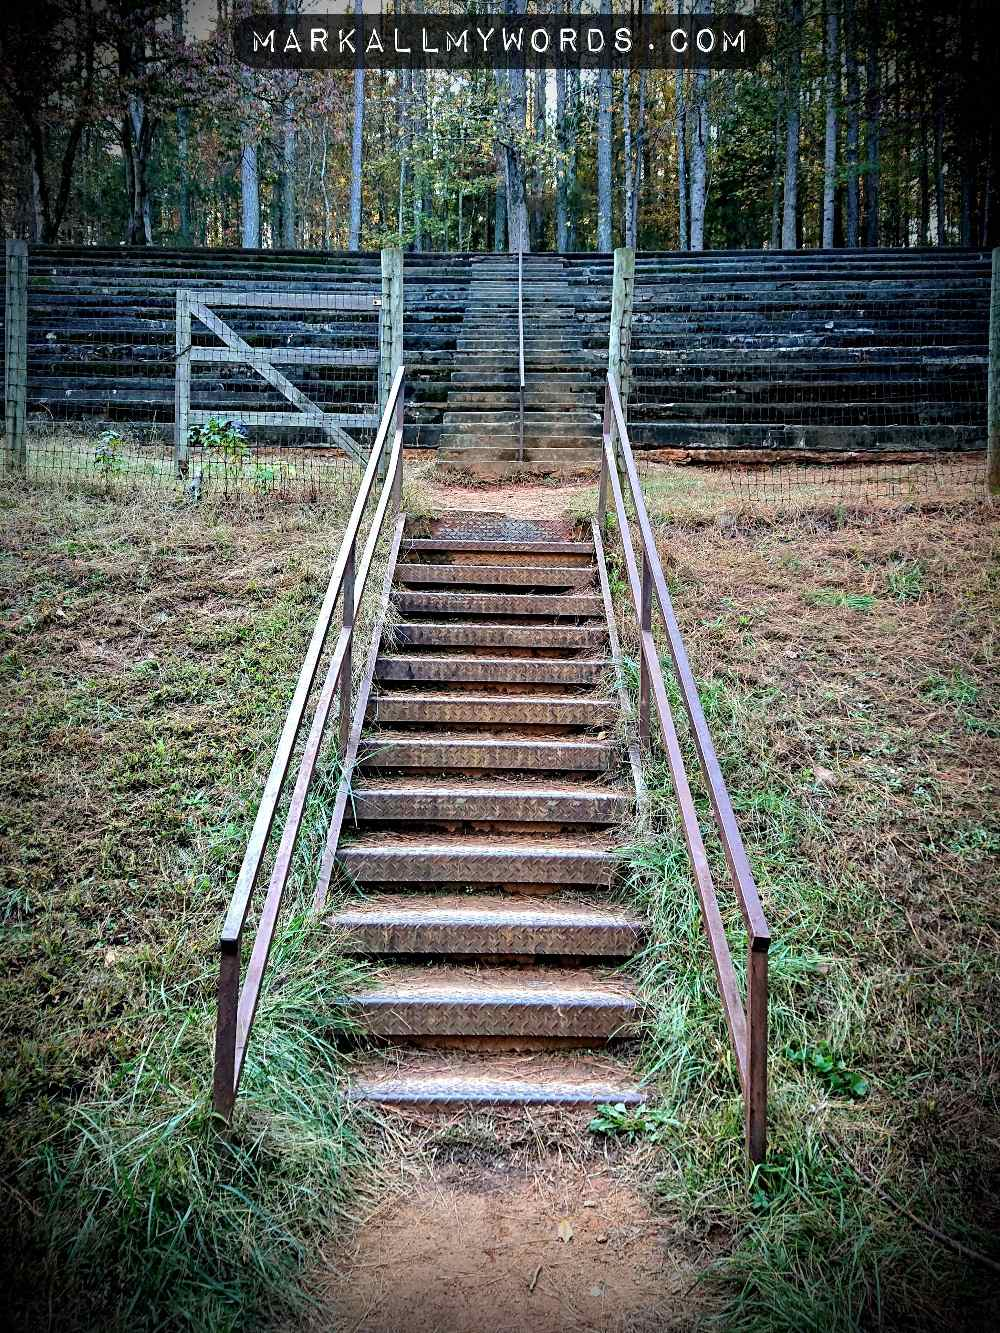 Stairs leading up in to old, abandoned stadium